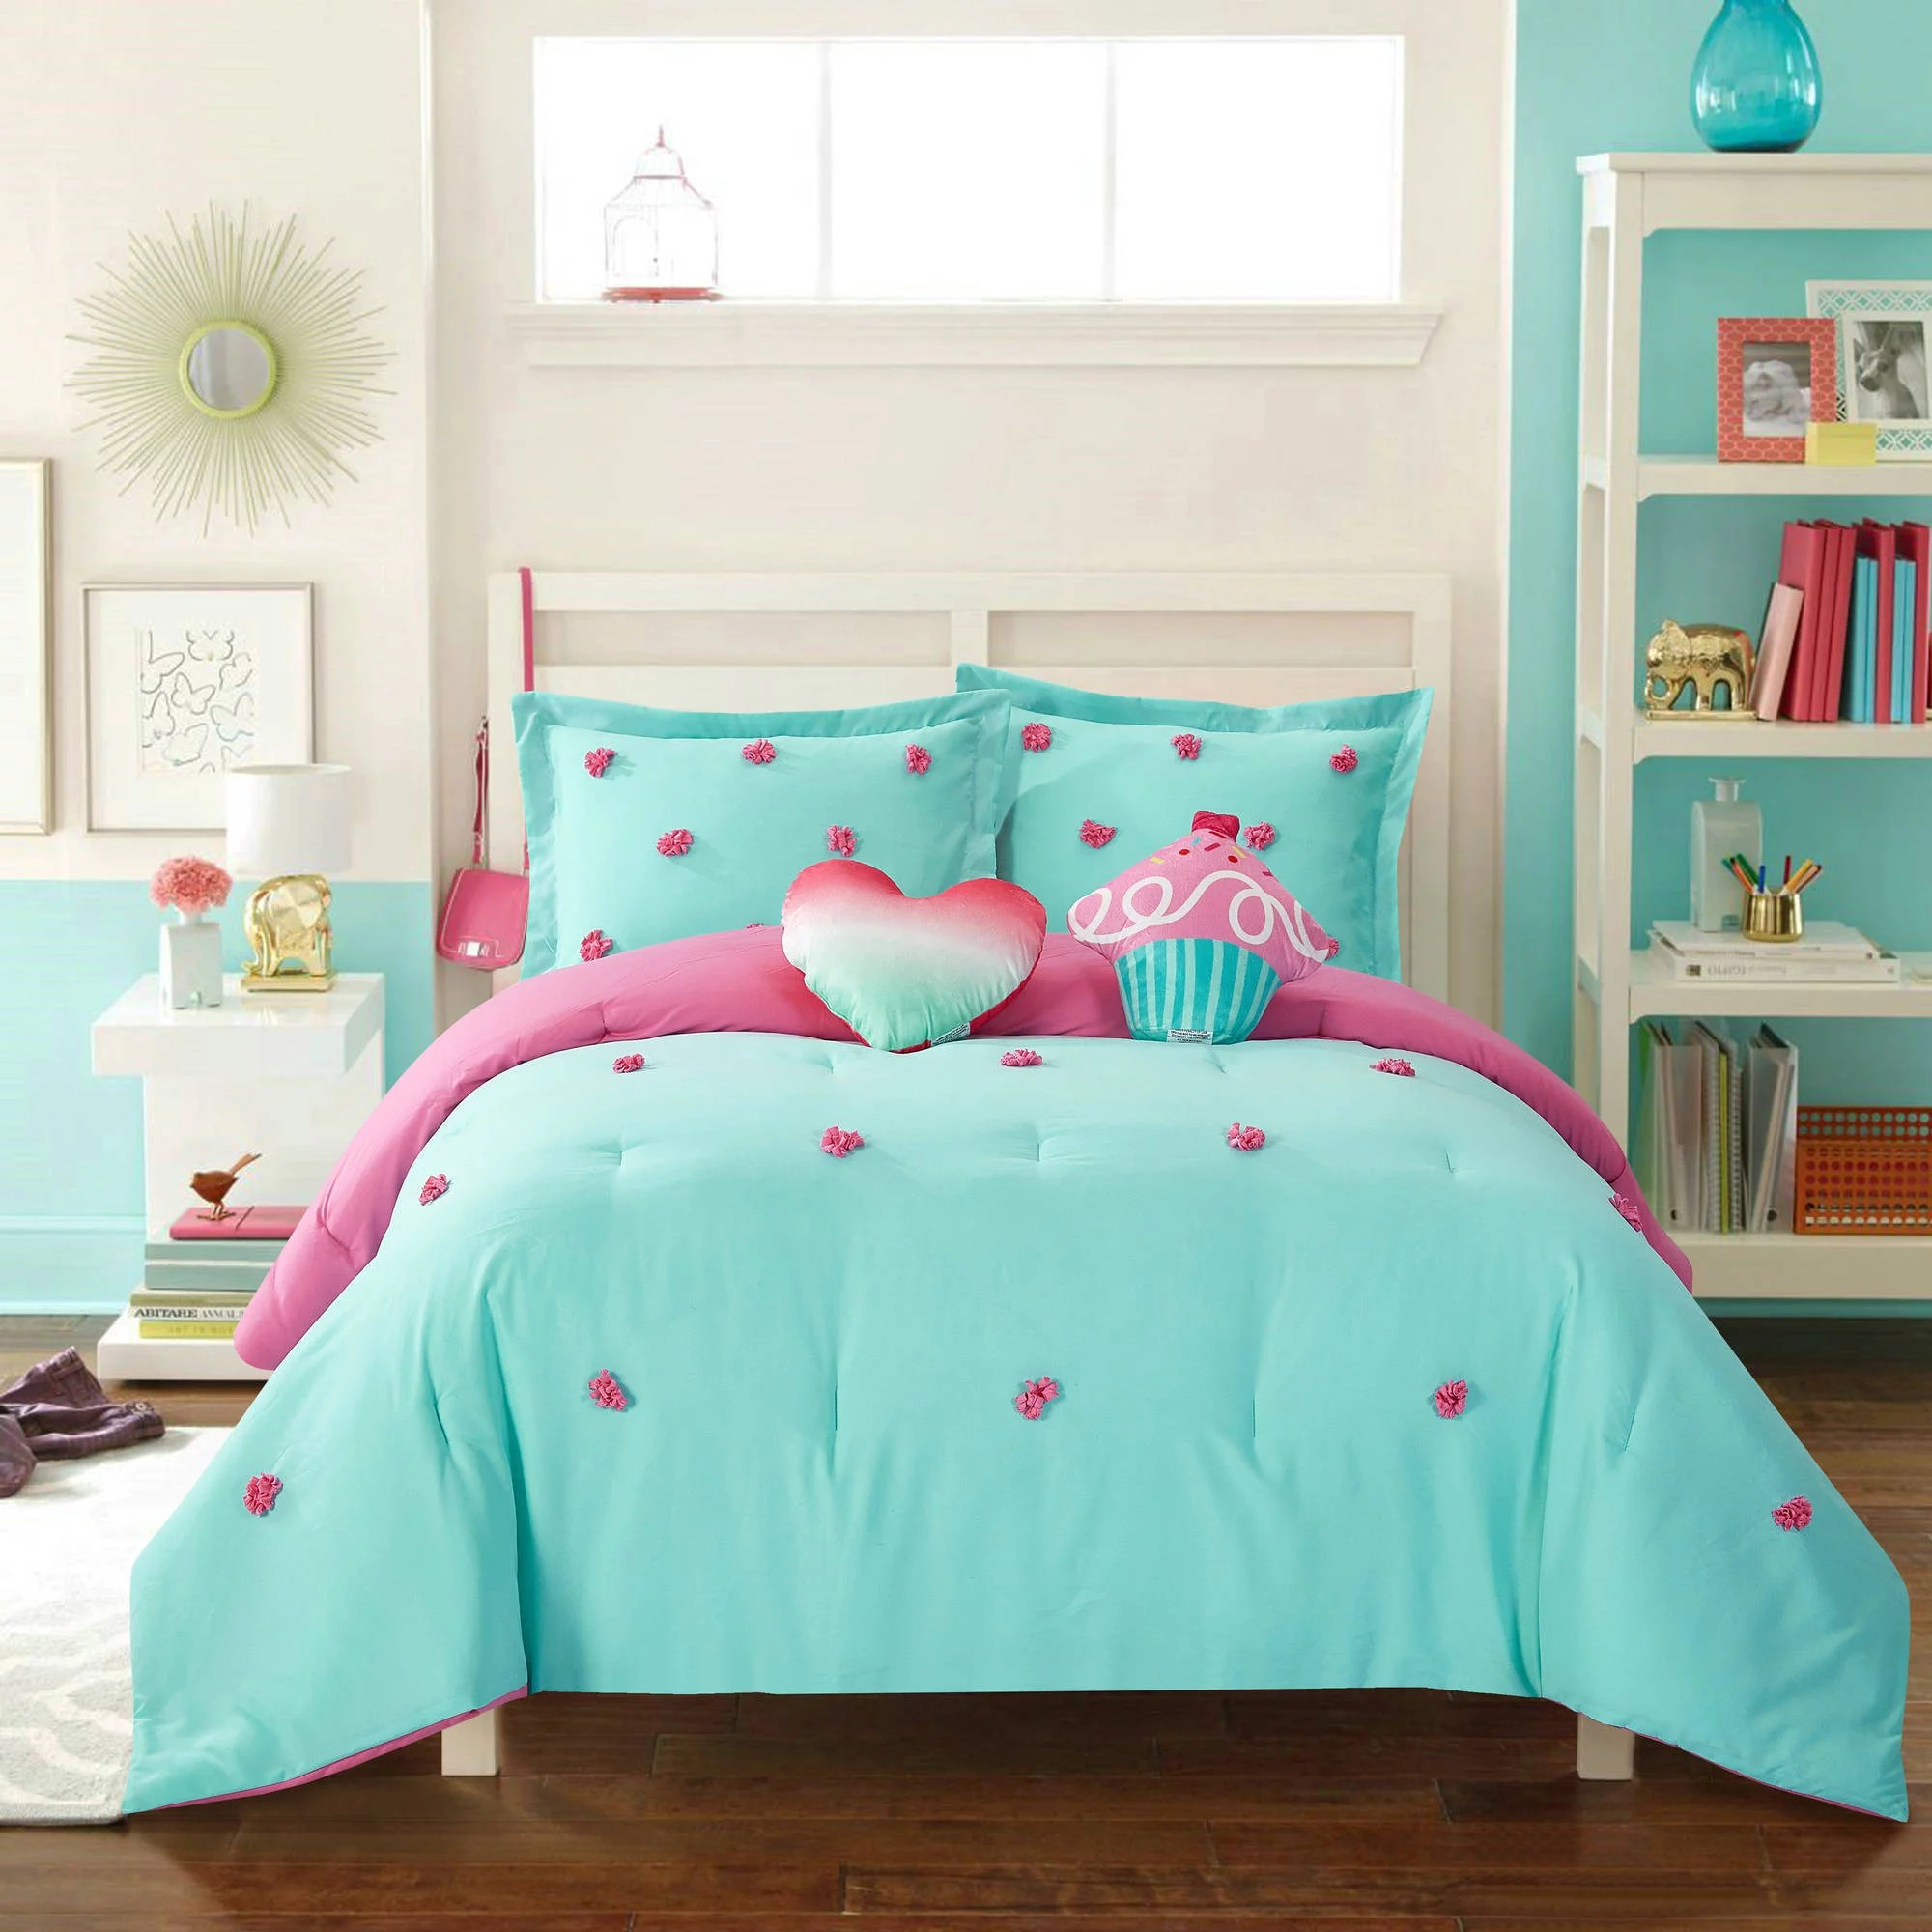 Boys Double Quilt Cover Better Homes Gardens Kids Pom Pom Comforter Set